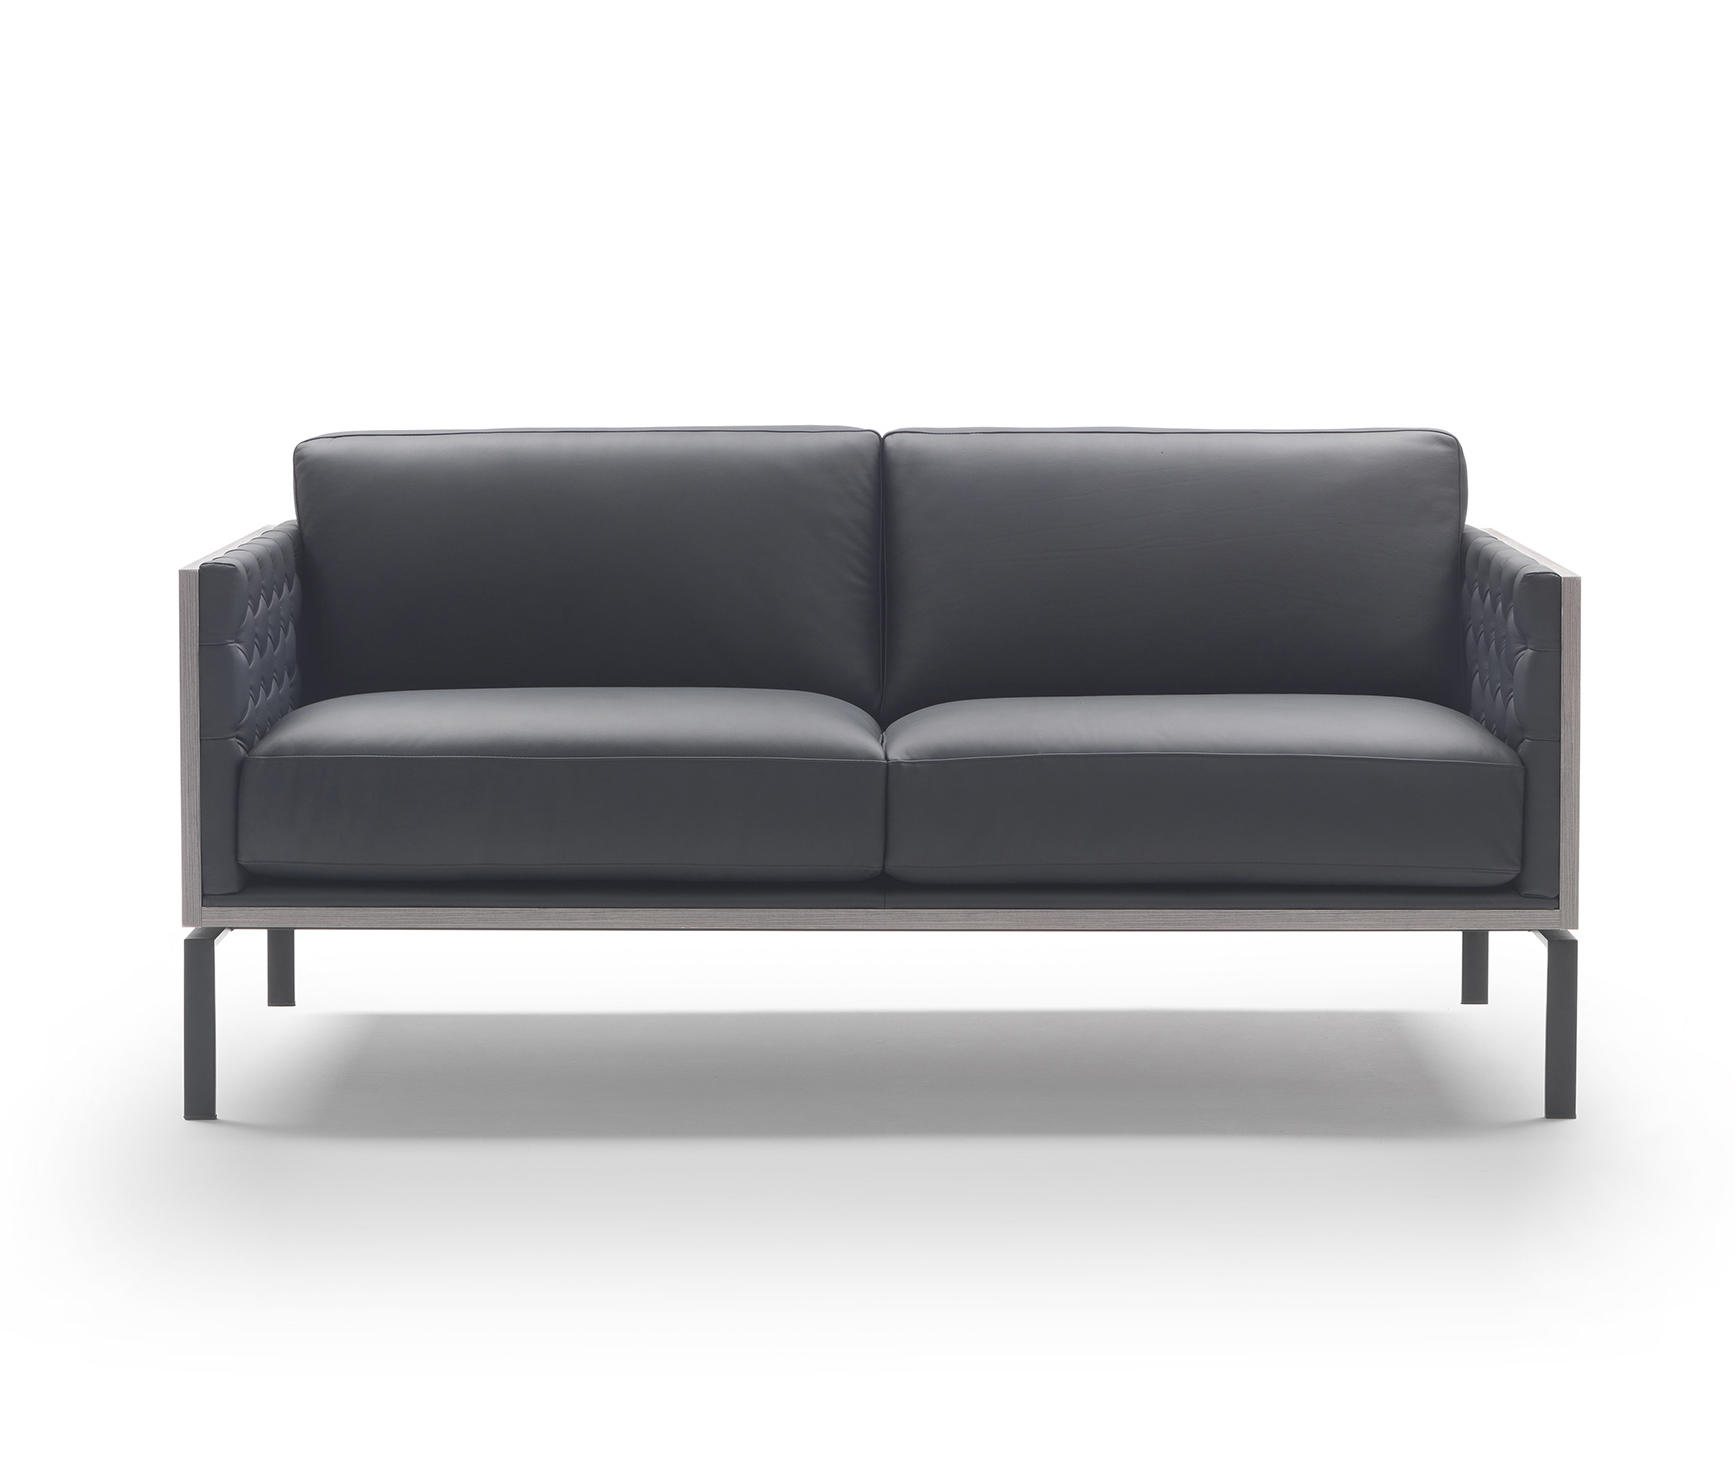 Incroyable Connor Quilted Sofa By Marelli | Sofas ...